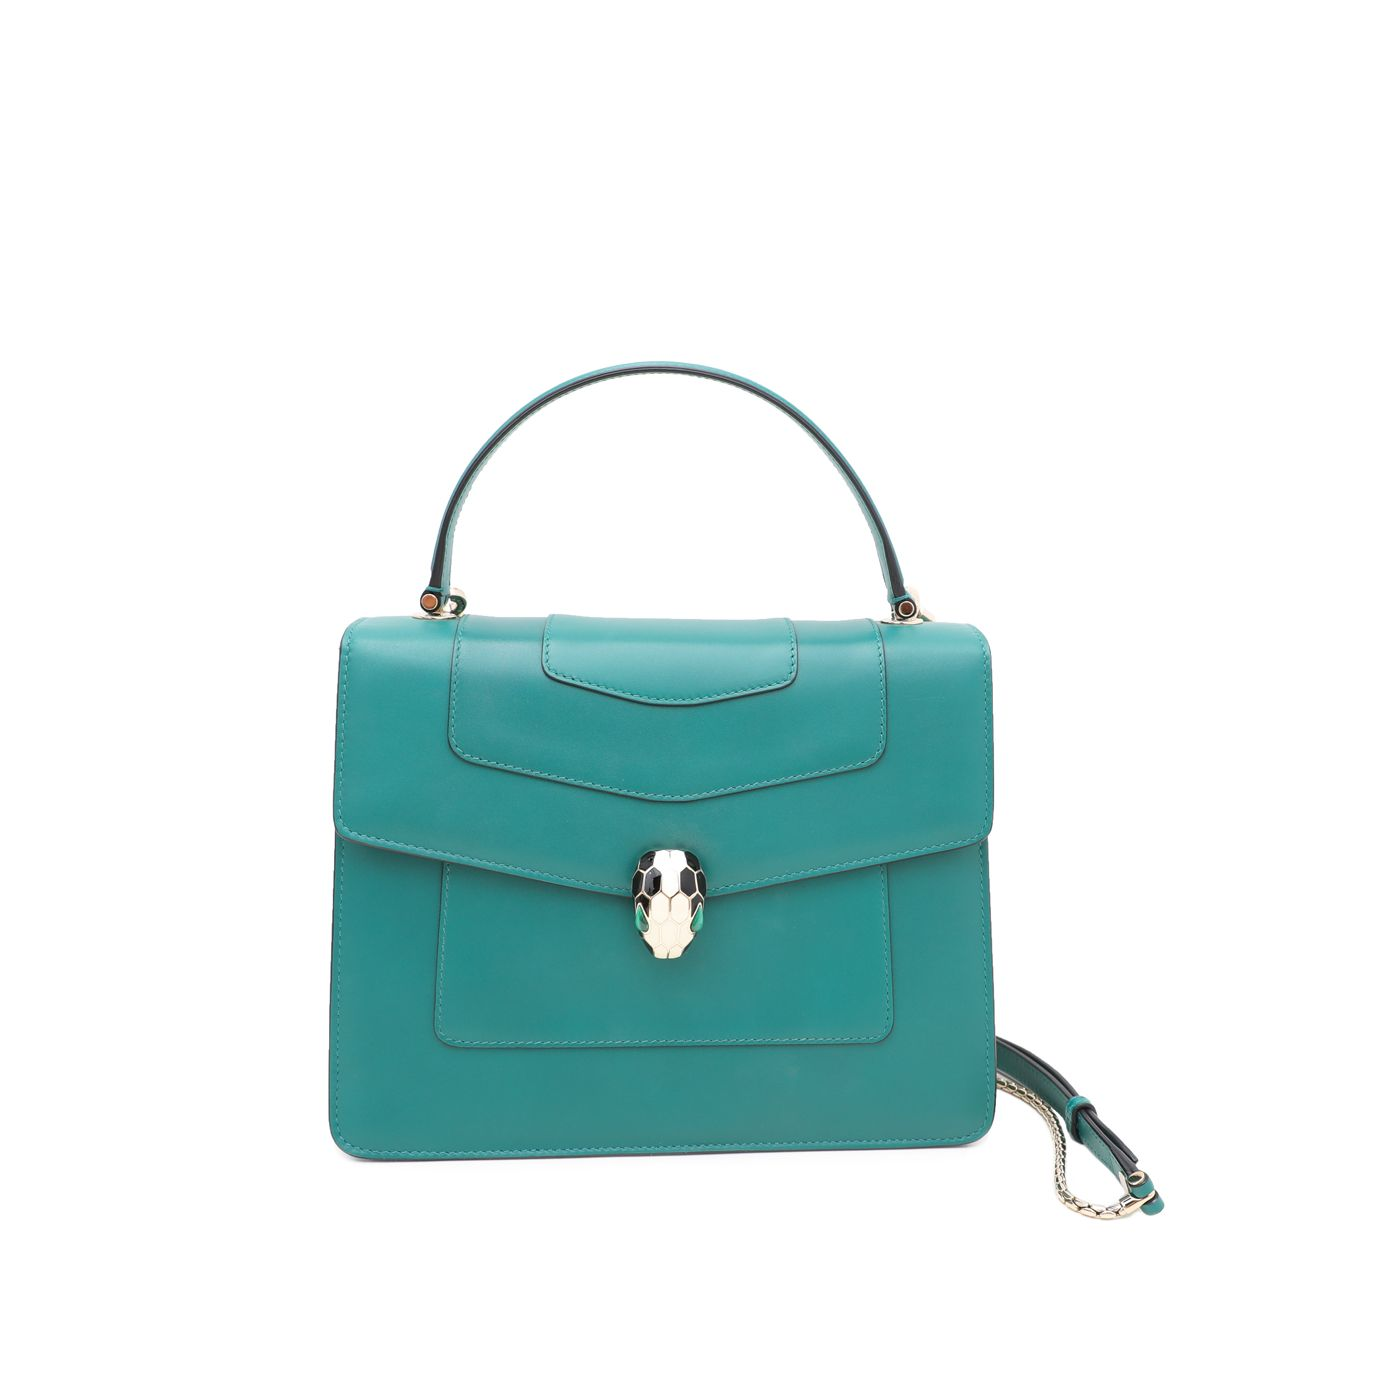 Bvlgari Emerald Green Serpenti Forever Top Handle Bag